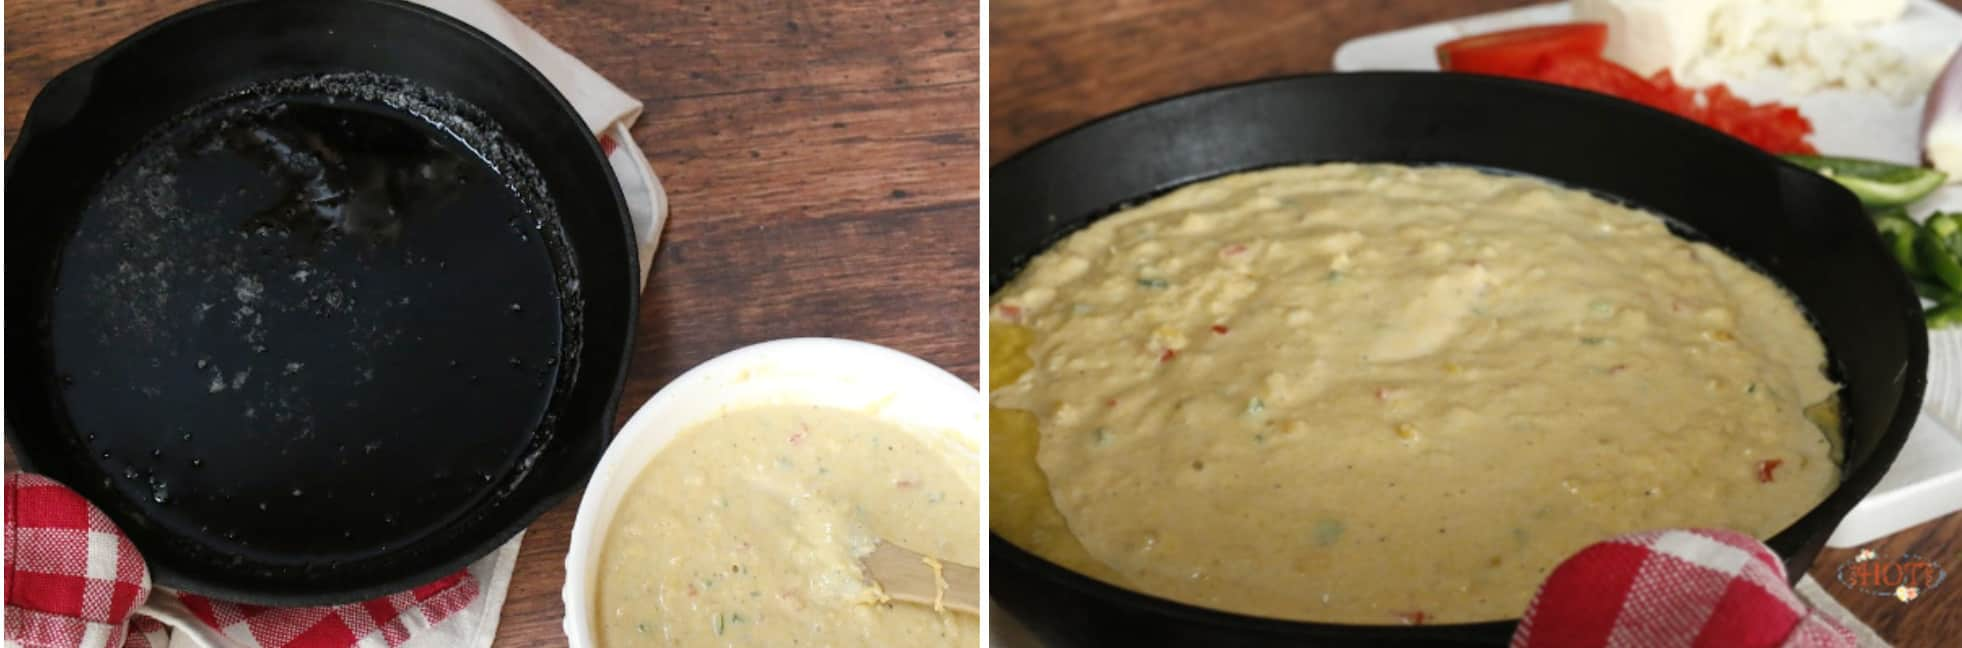 melted butter in an iron skillet with the cornbread batter